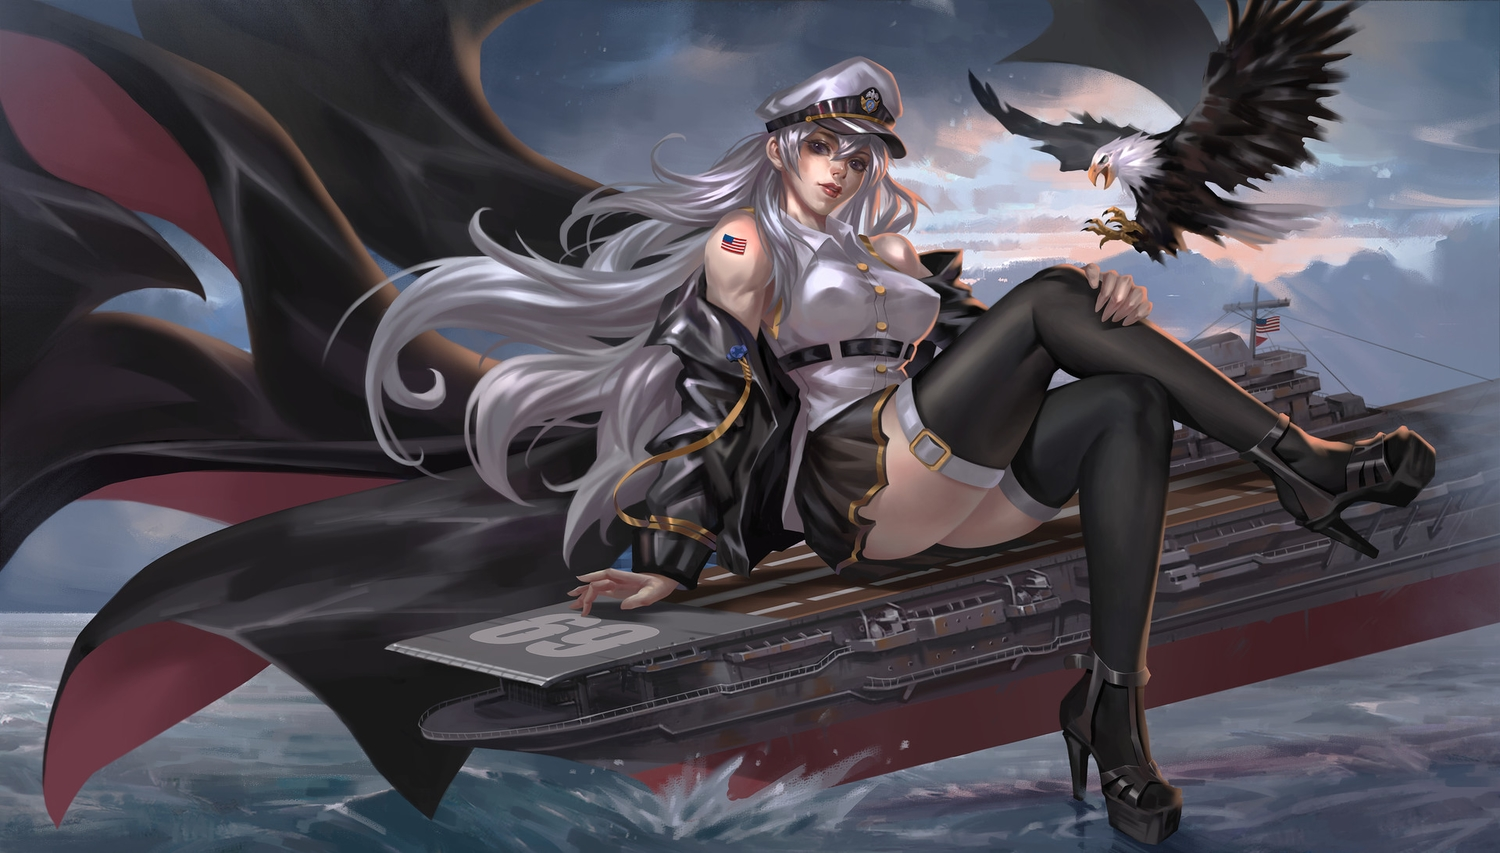 animal anthropomorphism azur_lane bird boat breasts combat_vehicle enterprise_(azur_lane) erect_nipples gray_hair hat junqi_mu long_hair purple_eyes realistic skirt thighhighs water